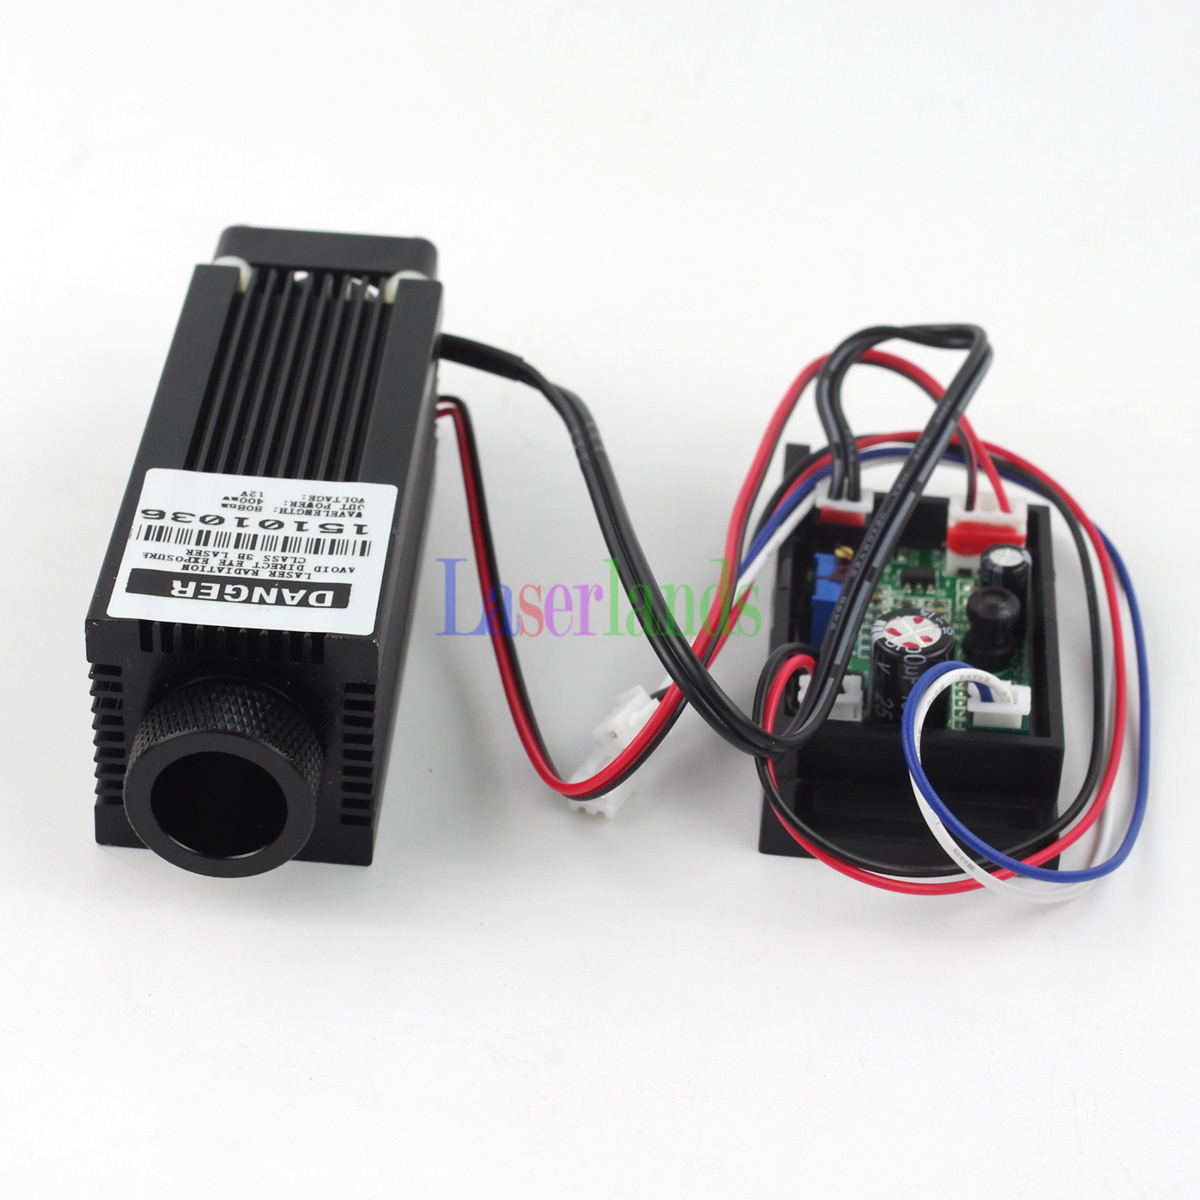 400mW 800mW 808nm 810nm Infrared IR Laser Diode Module 12V high quality 500mw 808nm 810nm ir laser module focusable infrared module with ttl driver board dc 12v input